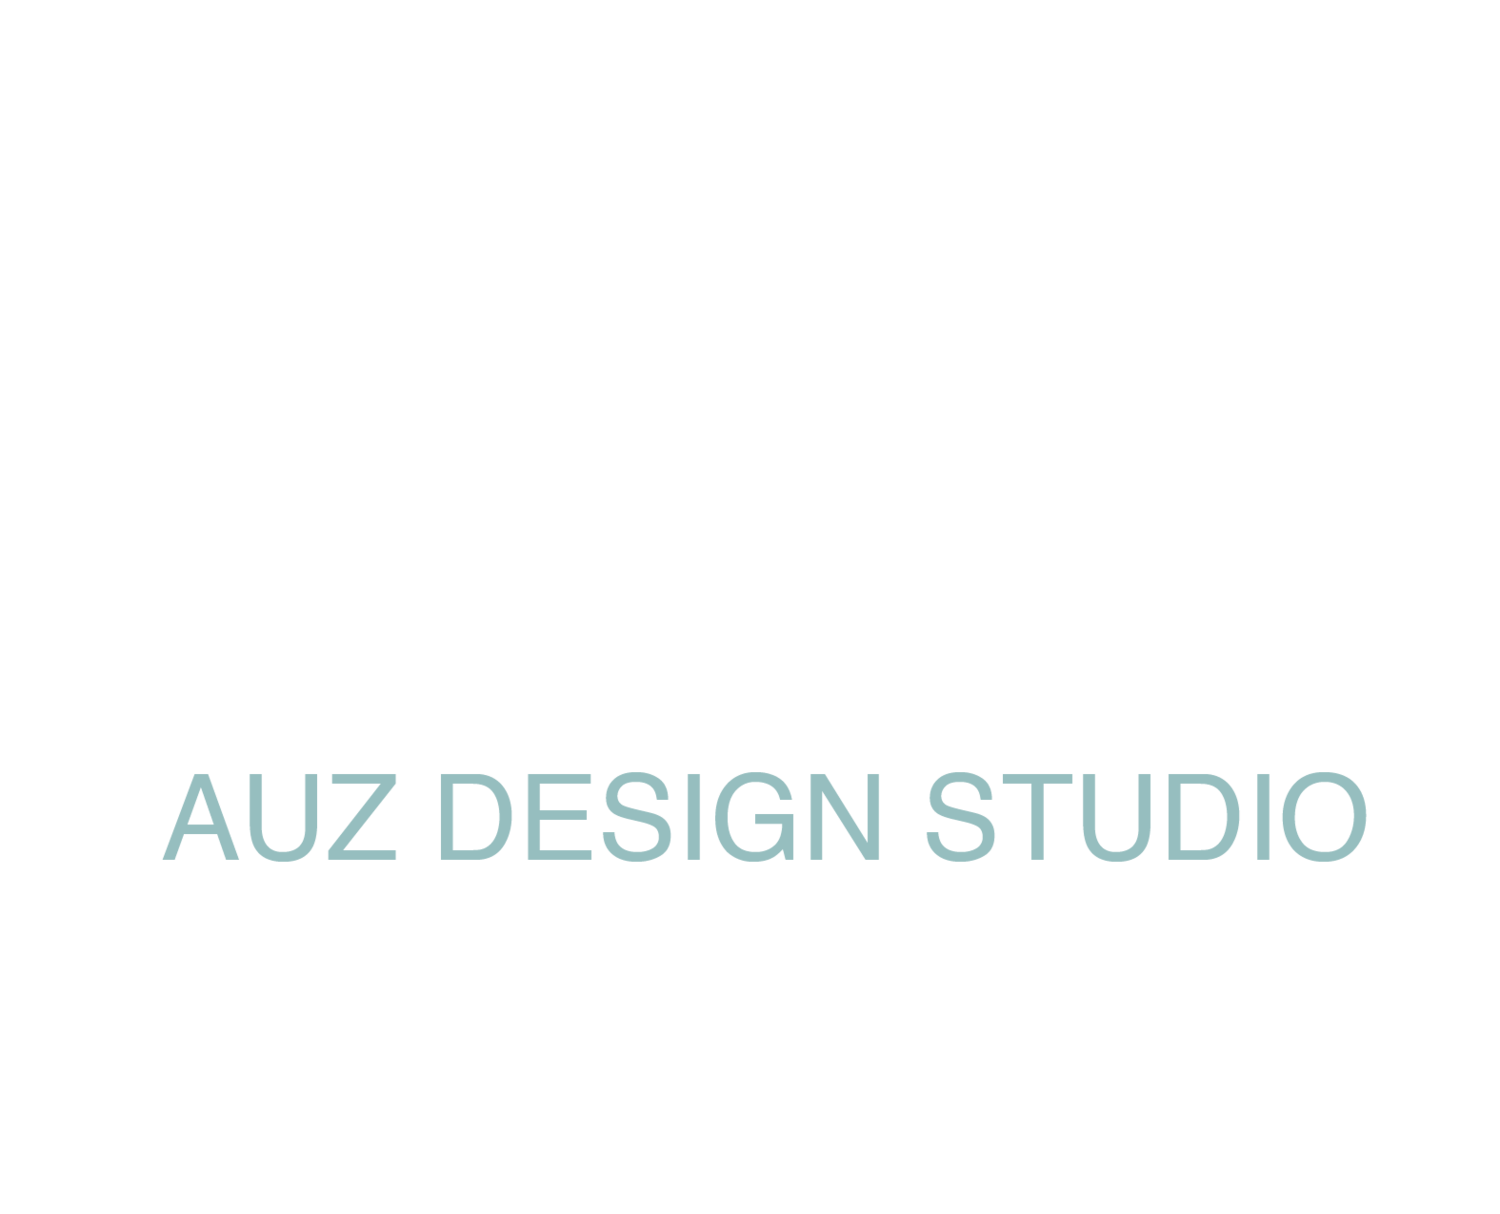 AUZ Design Studio, LLC